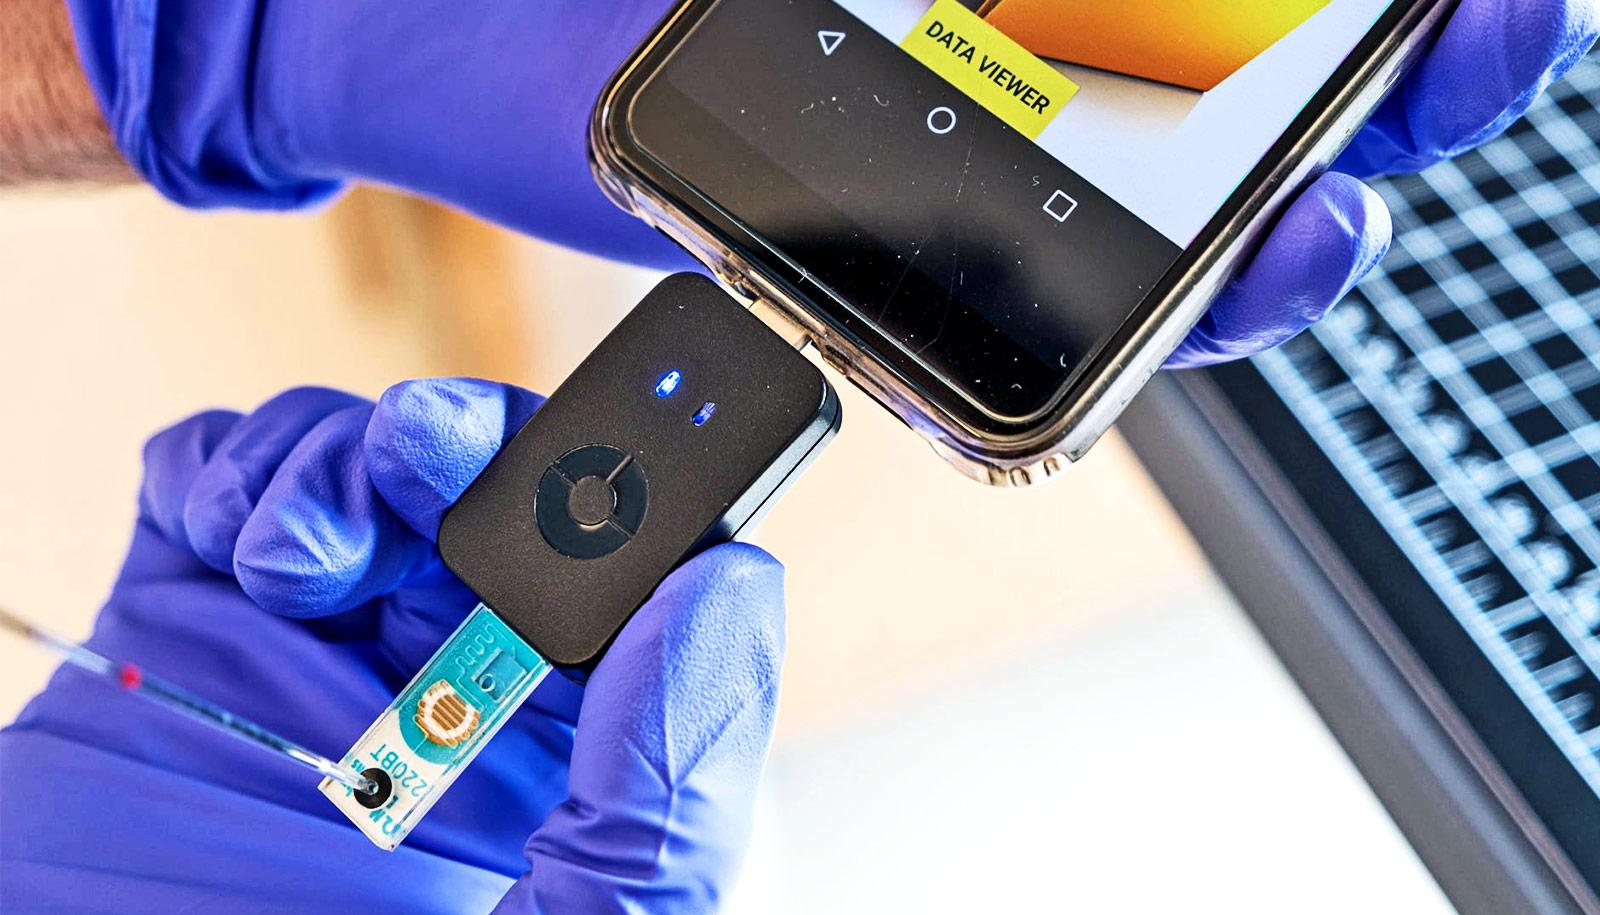 A researcher wearing purple gloves holds the small black device plugged into the phone. The device has a blue chip coming out of the bottom.